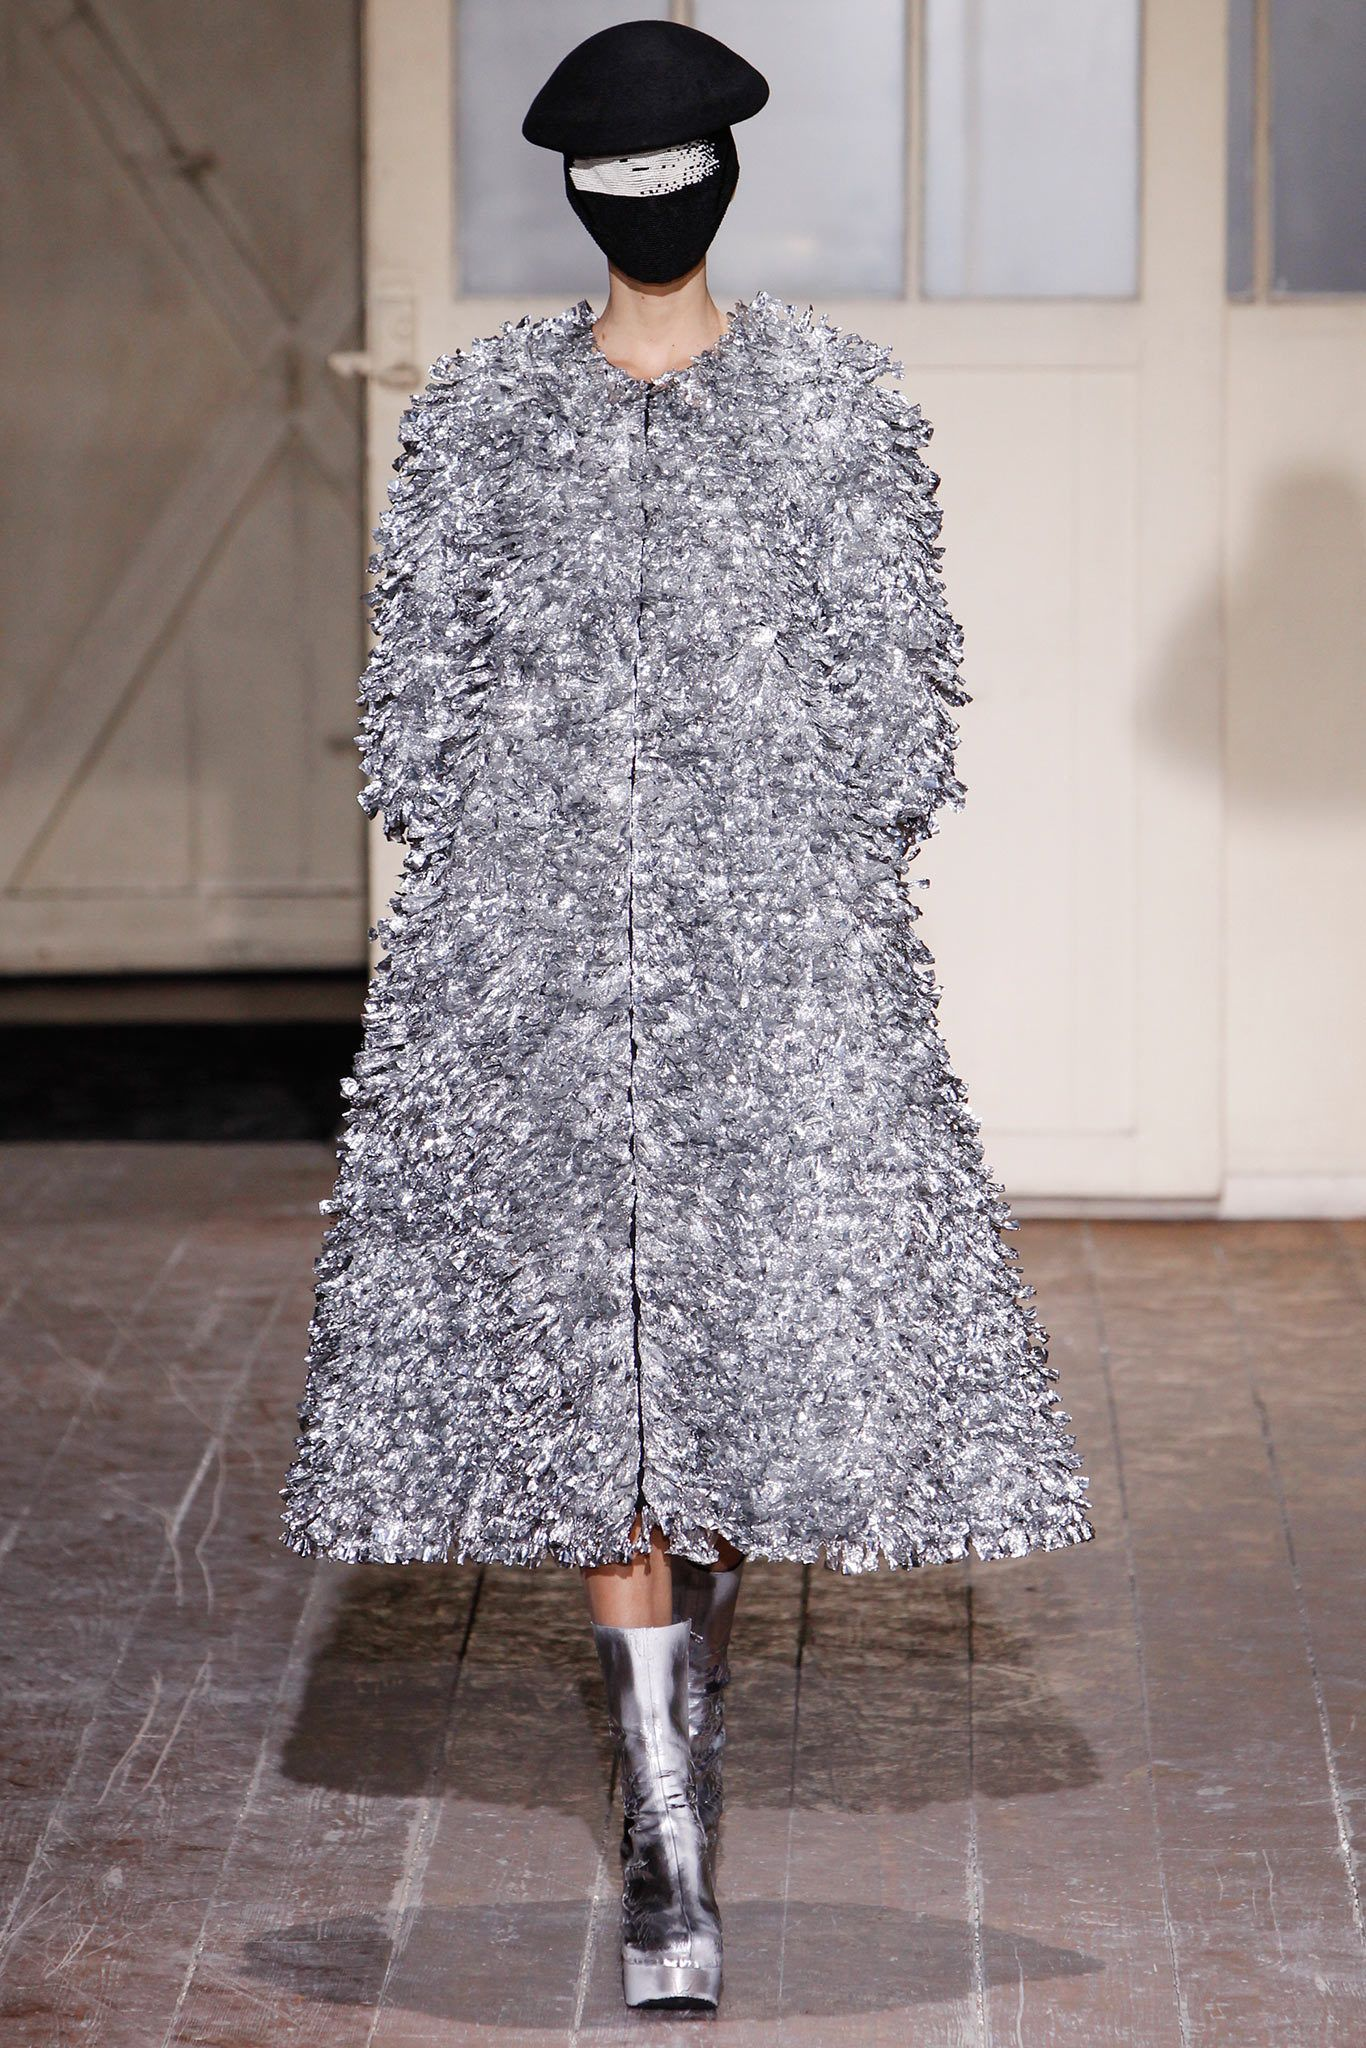 Maison Margiela - Spring 2013 Couture - Look 19 of 19